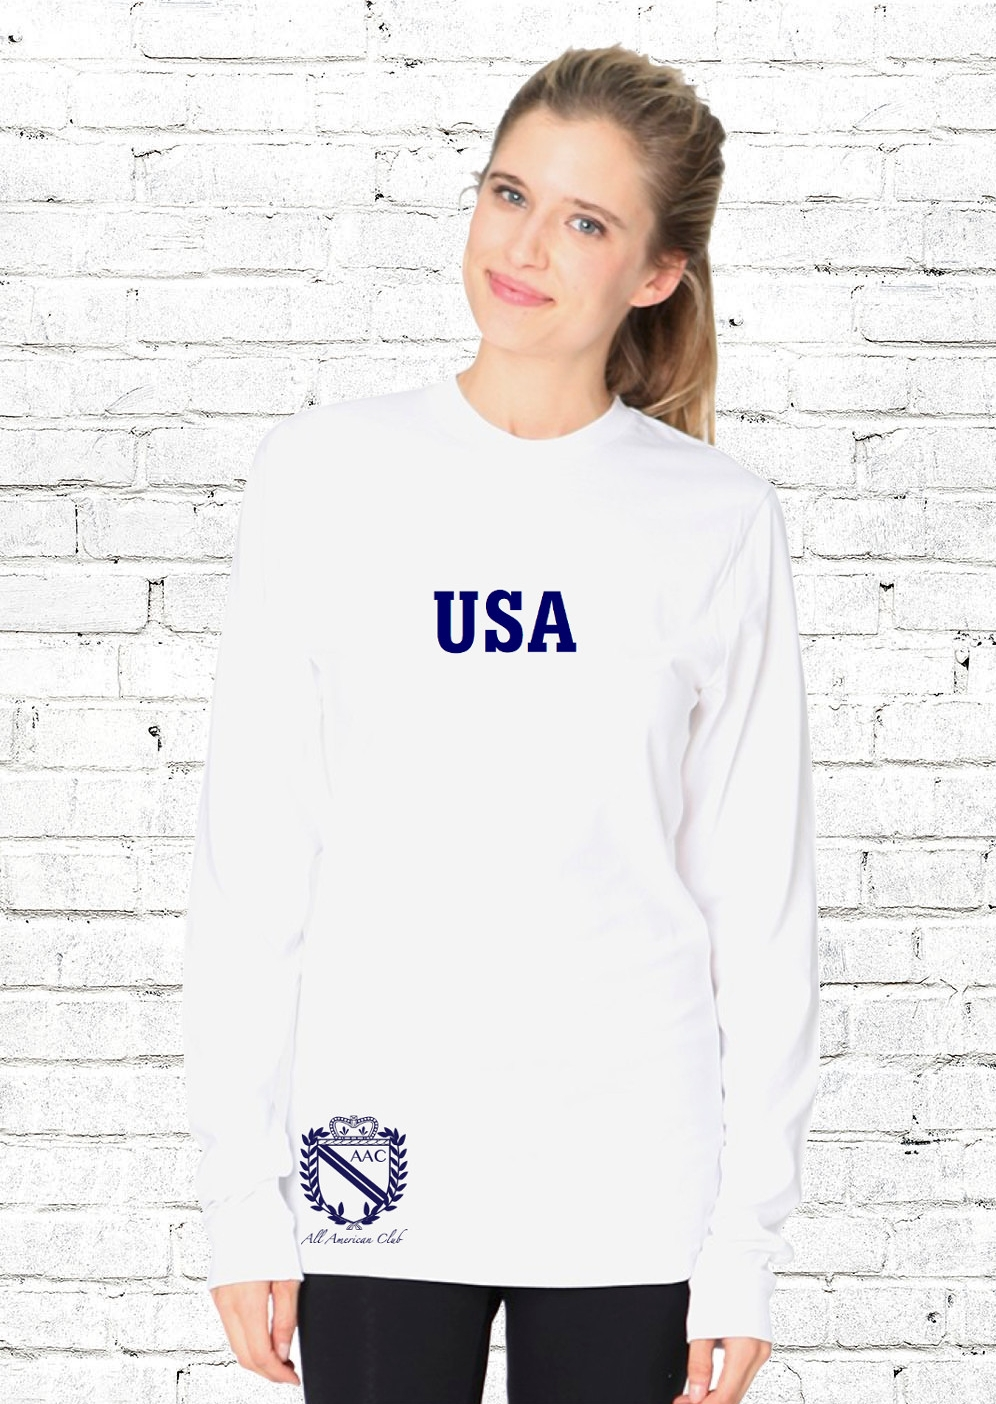 AAC USA Shirt - $42.00Homegrown. Homespun. Homemade. Right here in the USA. This is the softest, most durable cotton you will ever touch.Unisex.100% CottonClassic fit.Available in: White with RedWhite with NavyMade in the USA.BUY NOW